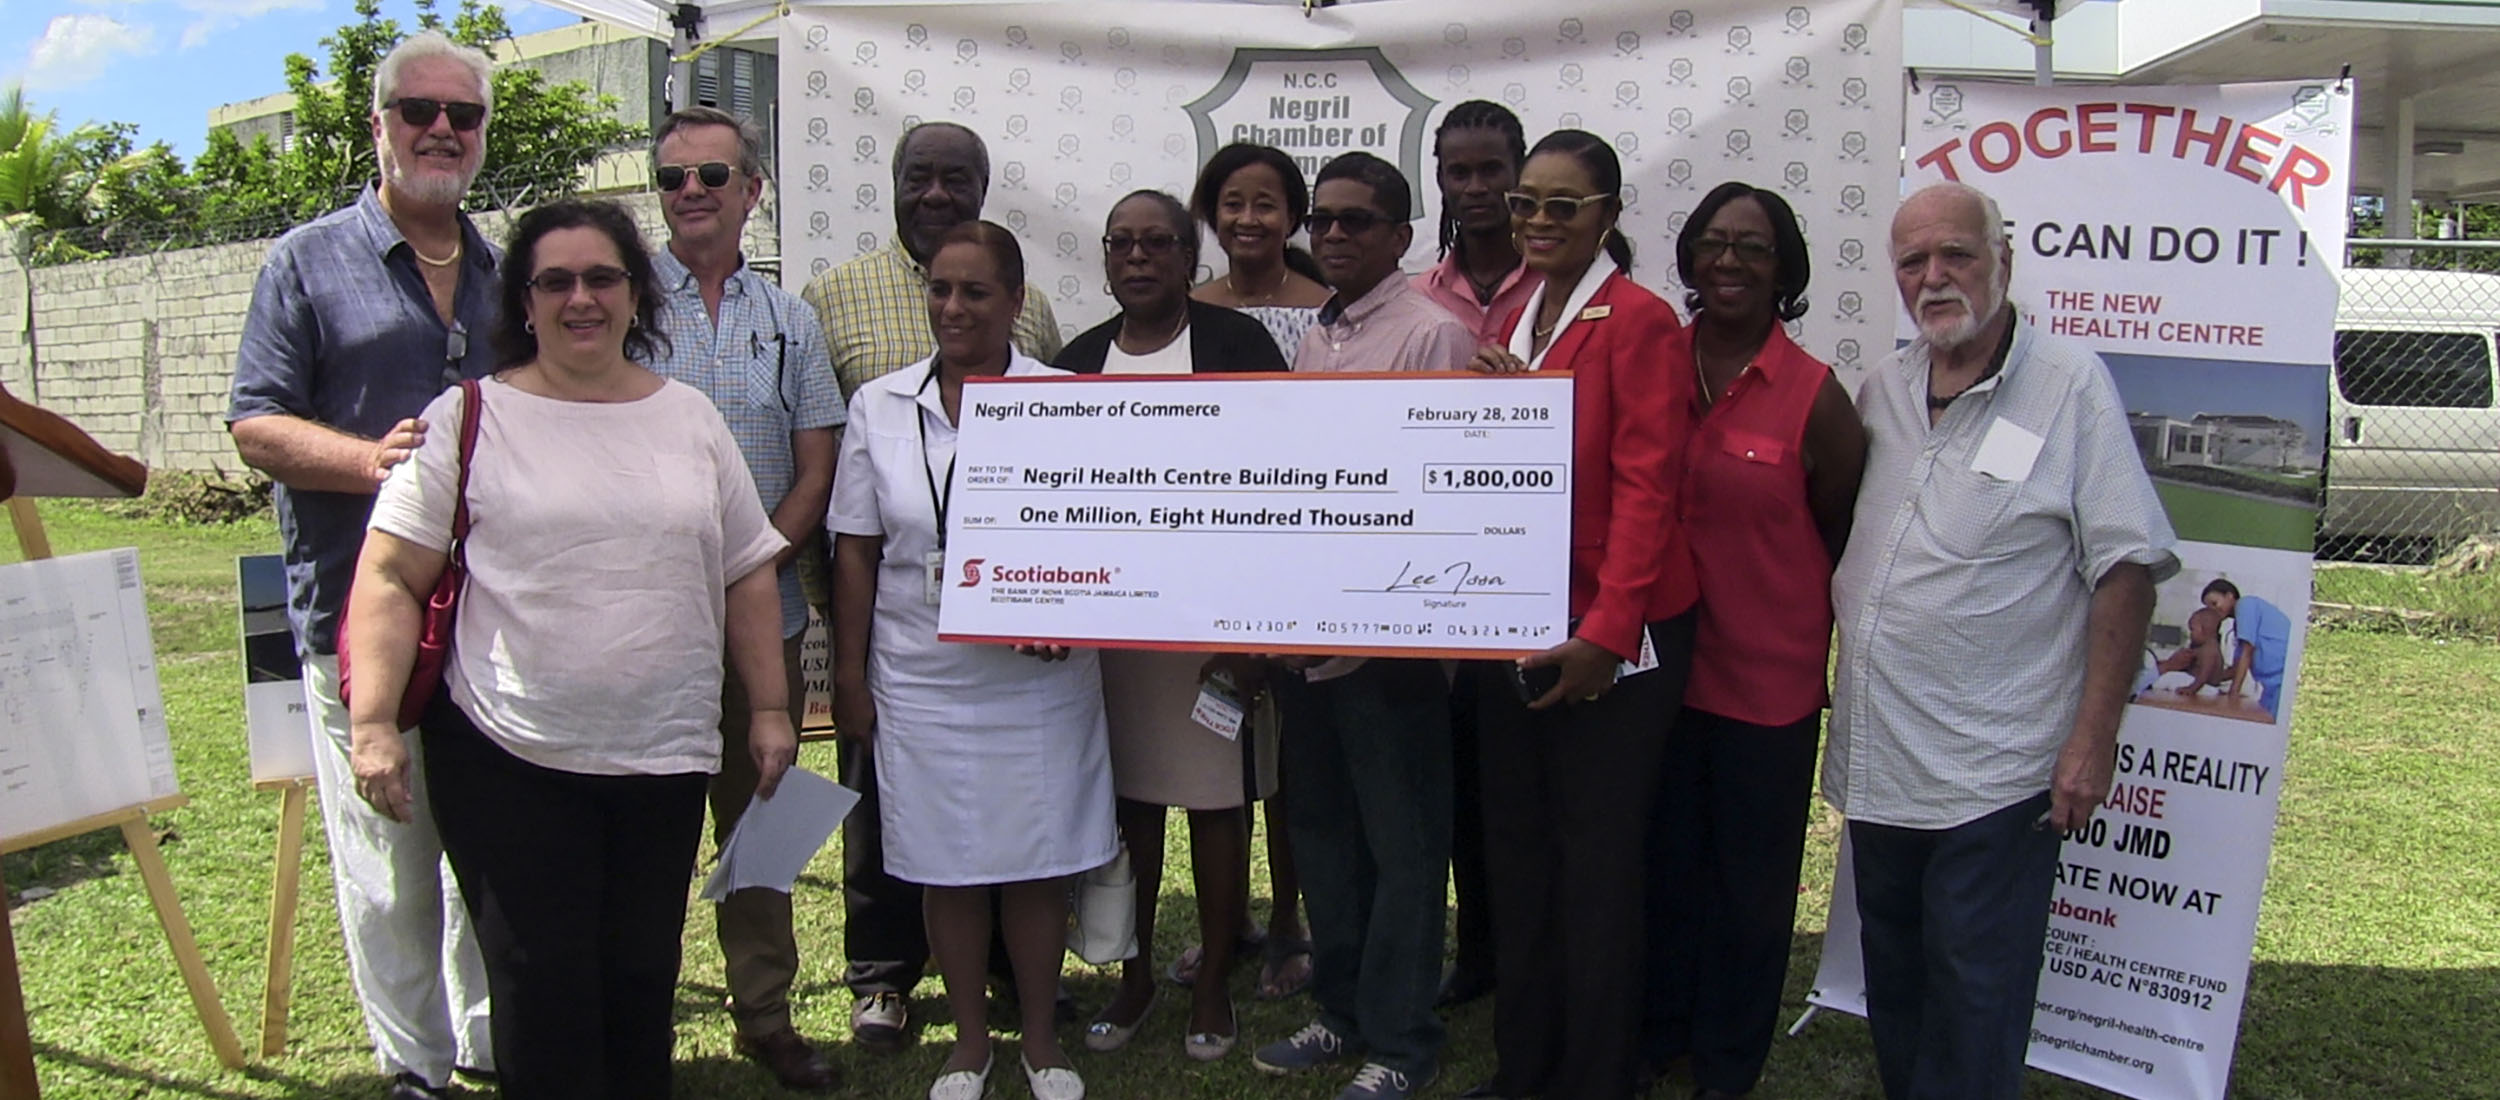 Negril Health Centre Fund NCC Donation YouTube.com Video - Barry J. Hough Sr. YouTube.com Channel